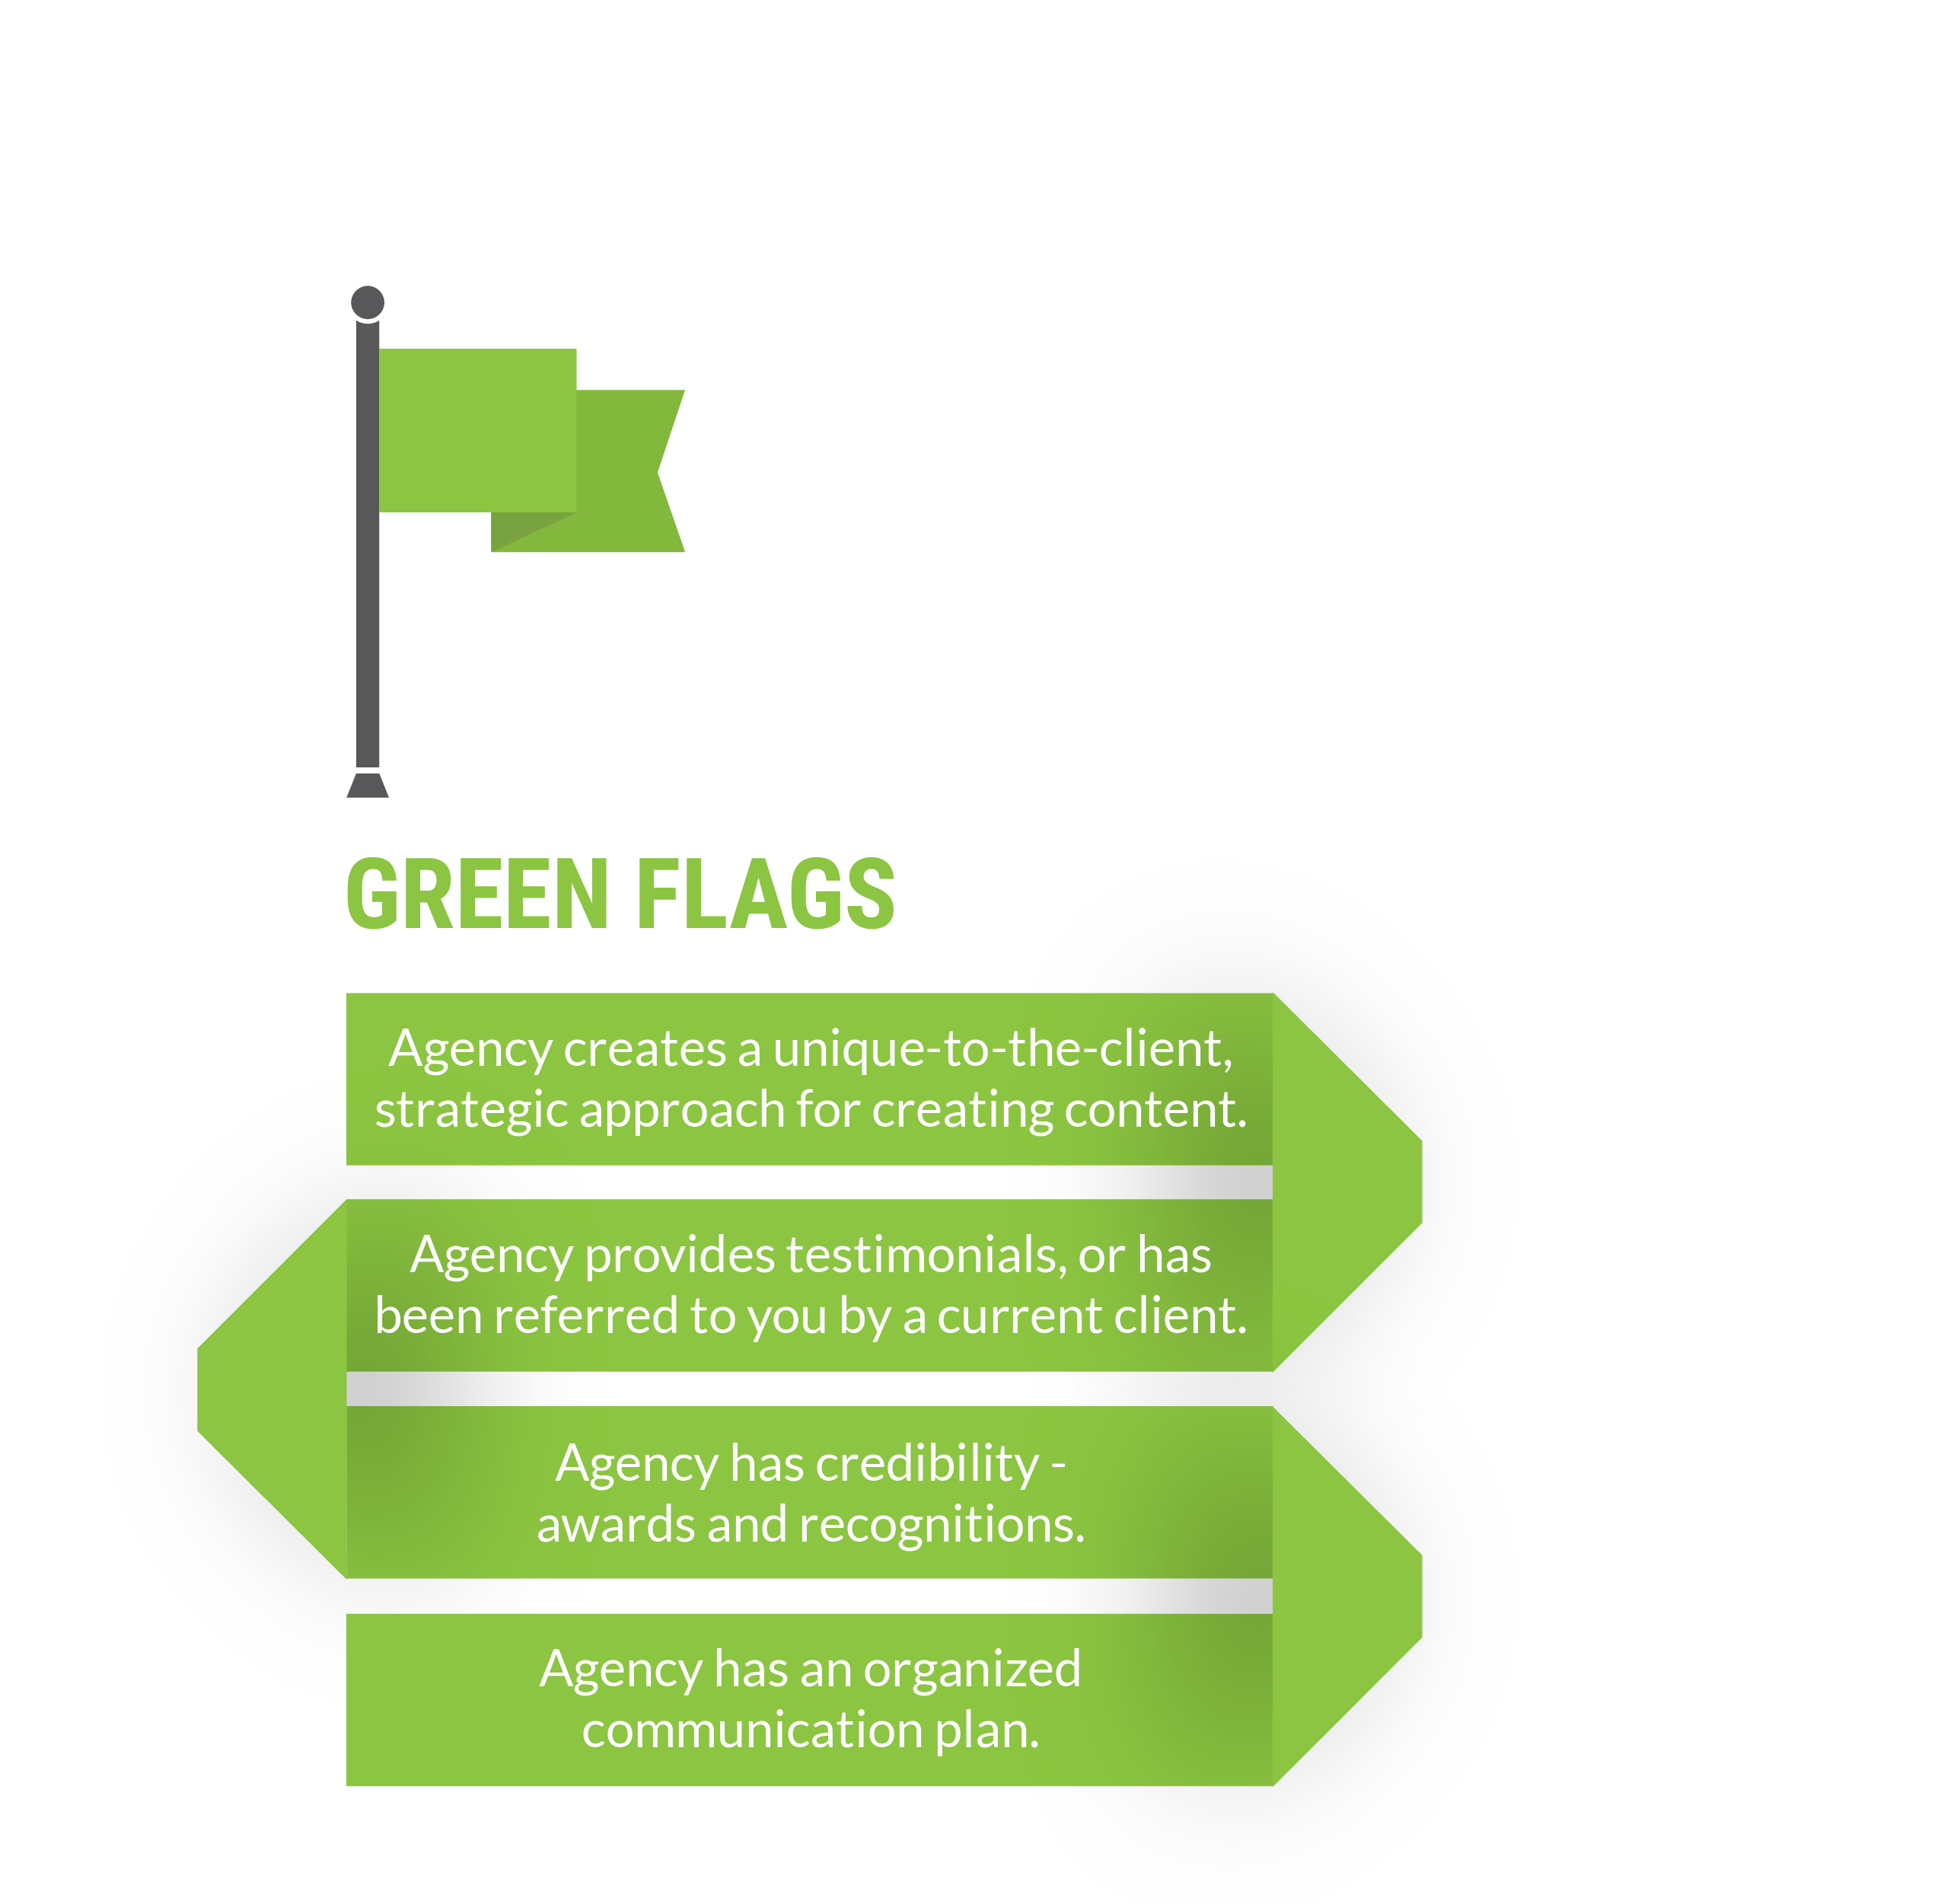 green flags: agency creates a unique-to-the-client strategic approach for creating content. Agency provides testimonials, or has been referred to you by a current client. Agency has credibility - awards and recognitions. Agency has an organized communication plan.